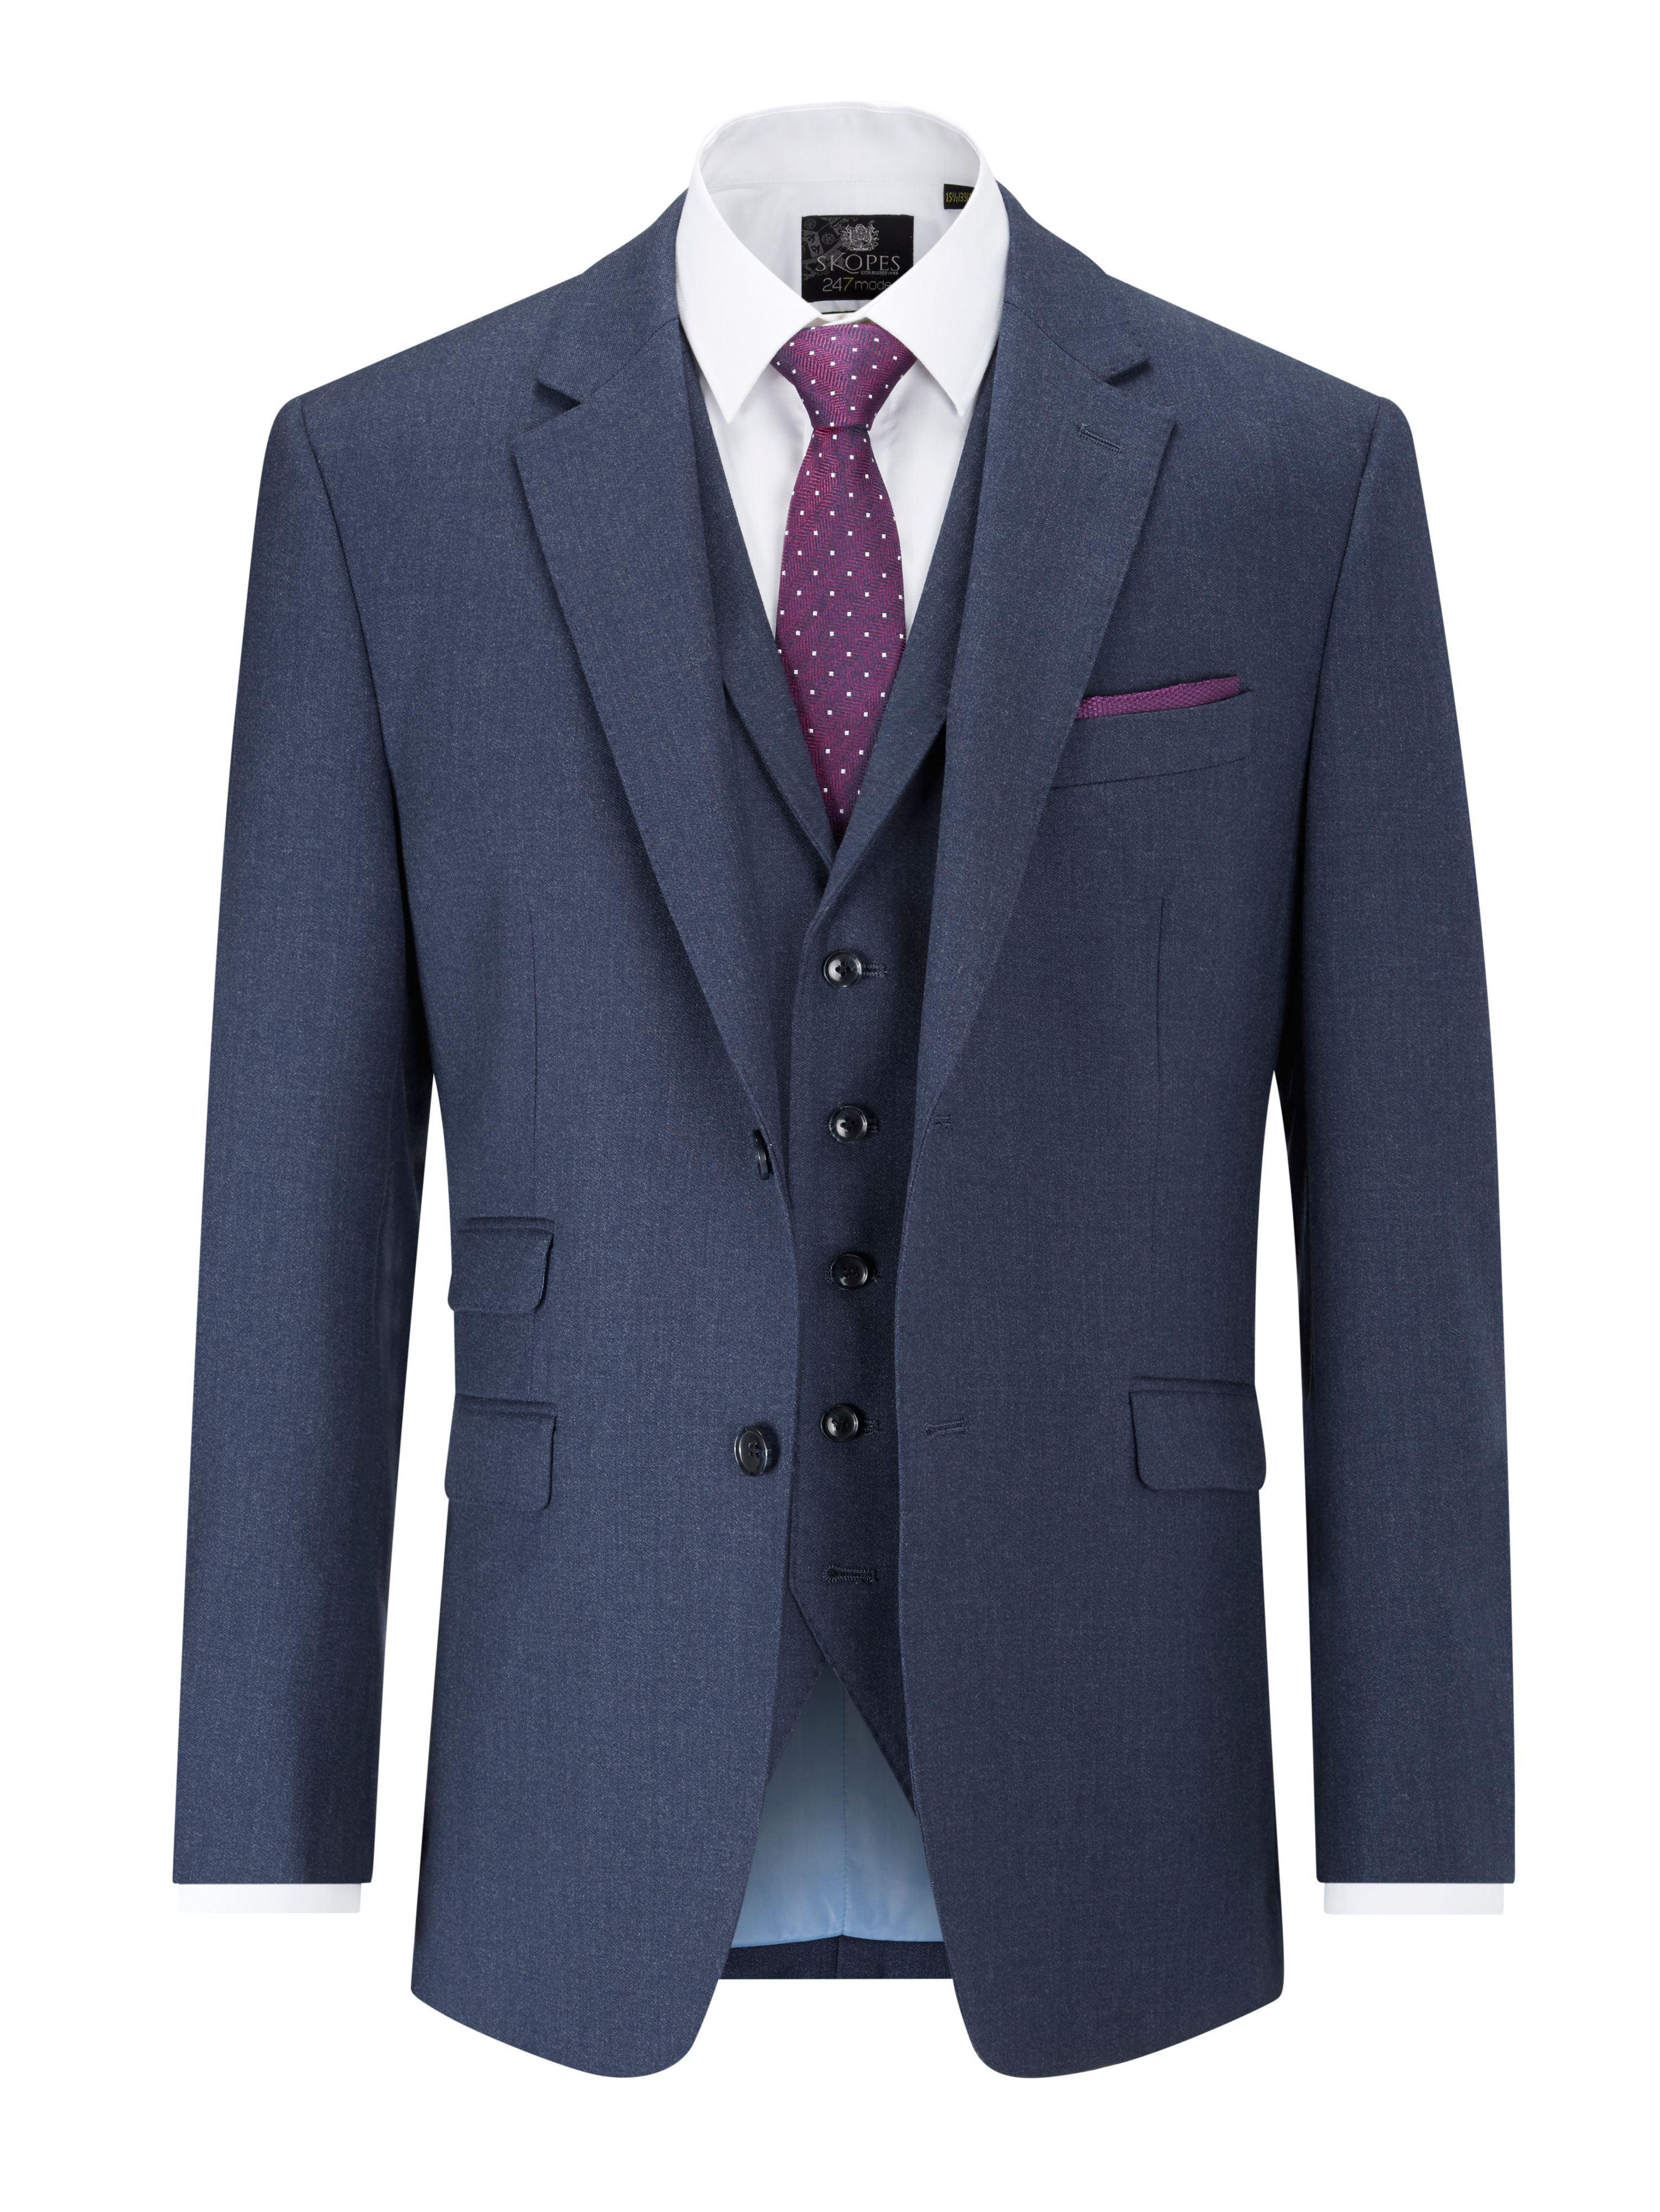 Jearey Mens Blazer Casual Slim Fit Lapel Suit Jacket One Button Daily Business Dress Coat. by Jearey. $ - $ $ 39 $ 45 99 Prime. FREE Shipping on eligible orders. Some sizes/colors are Prime eligible. 4 out of 5 stars 9.